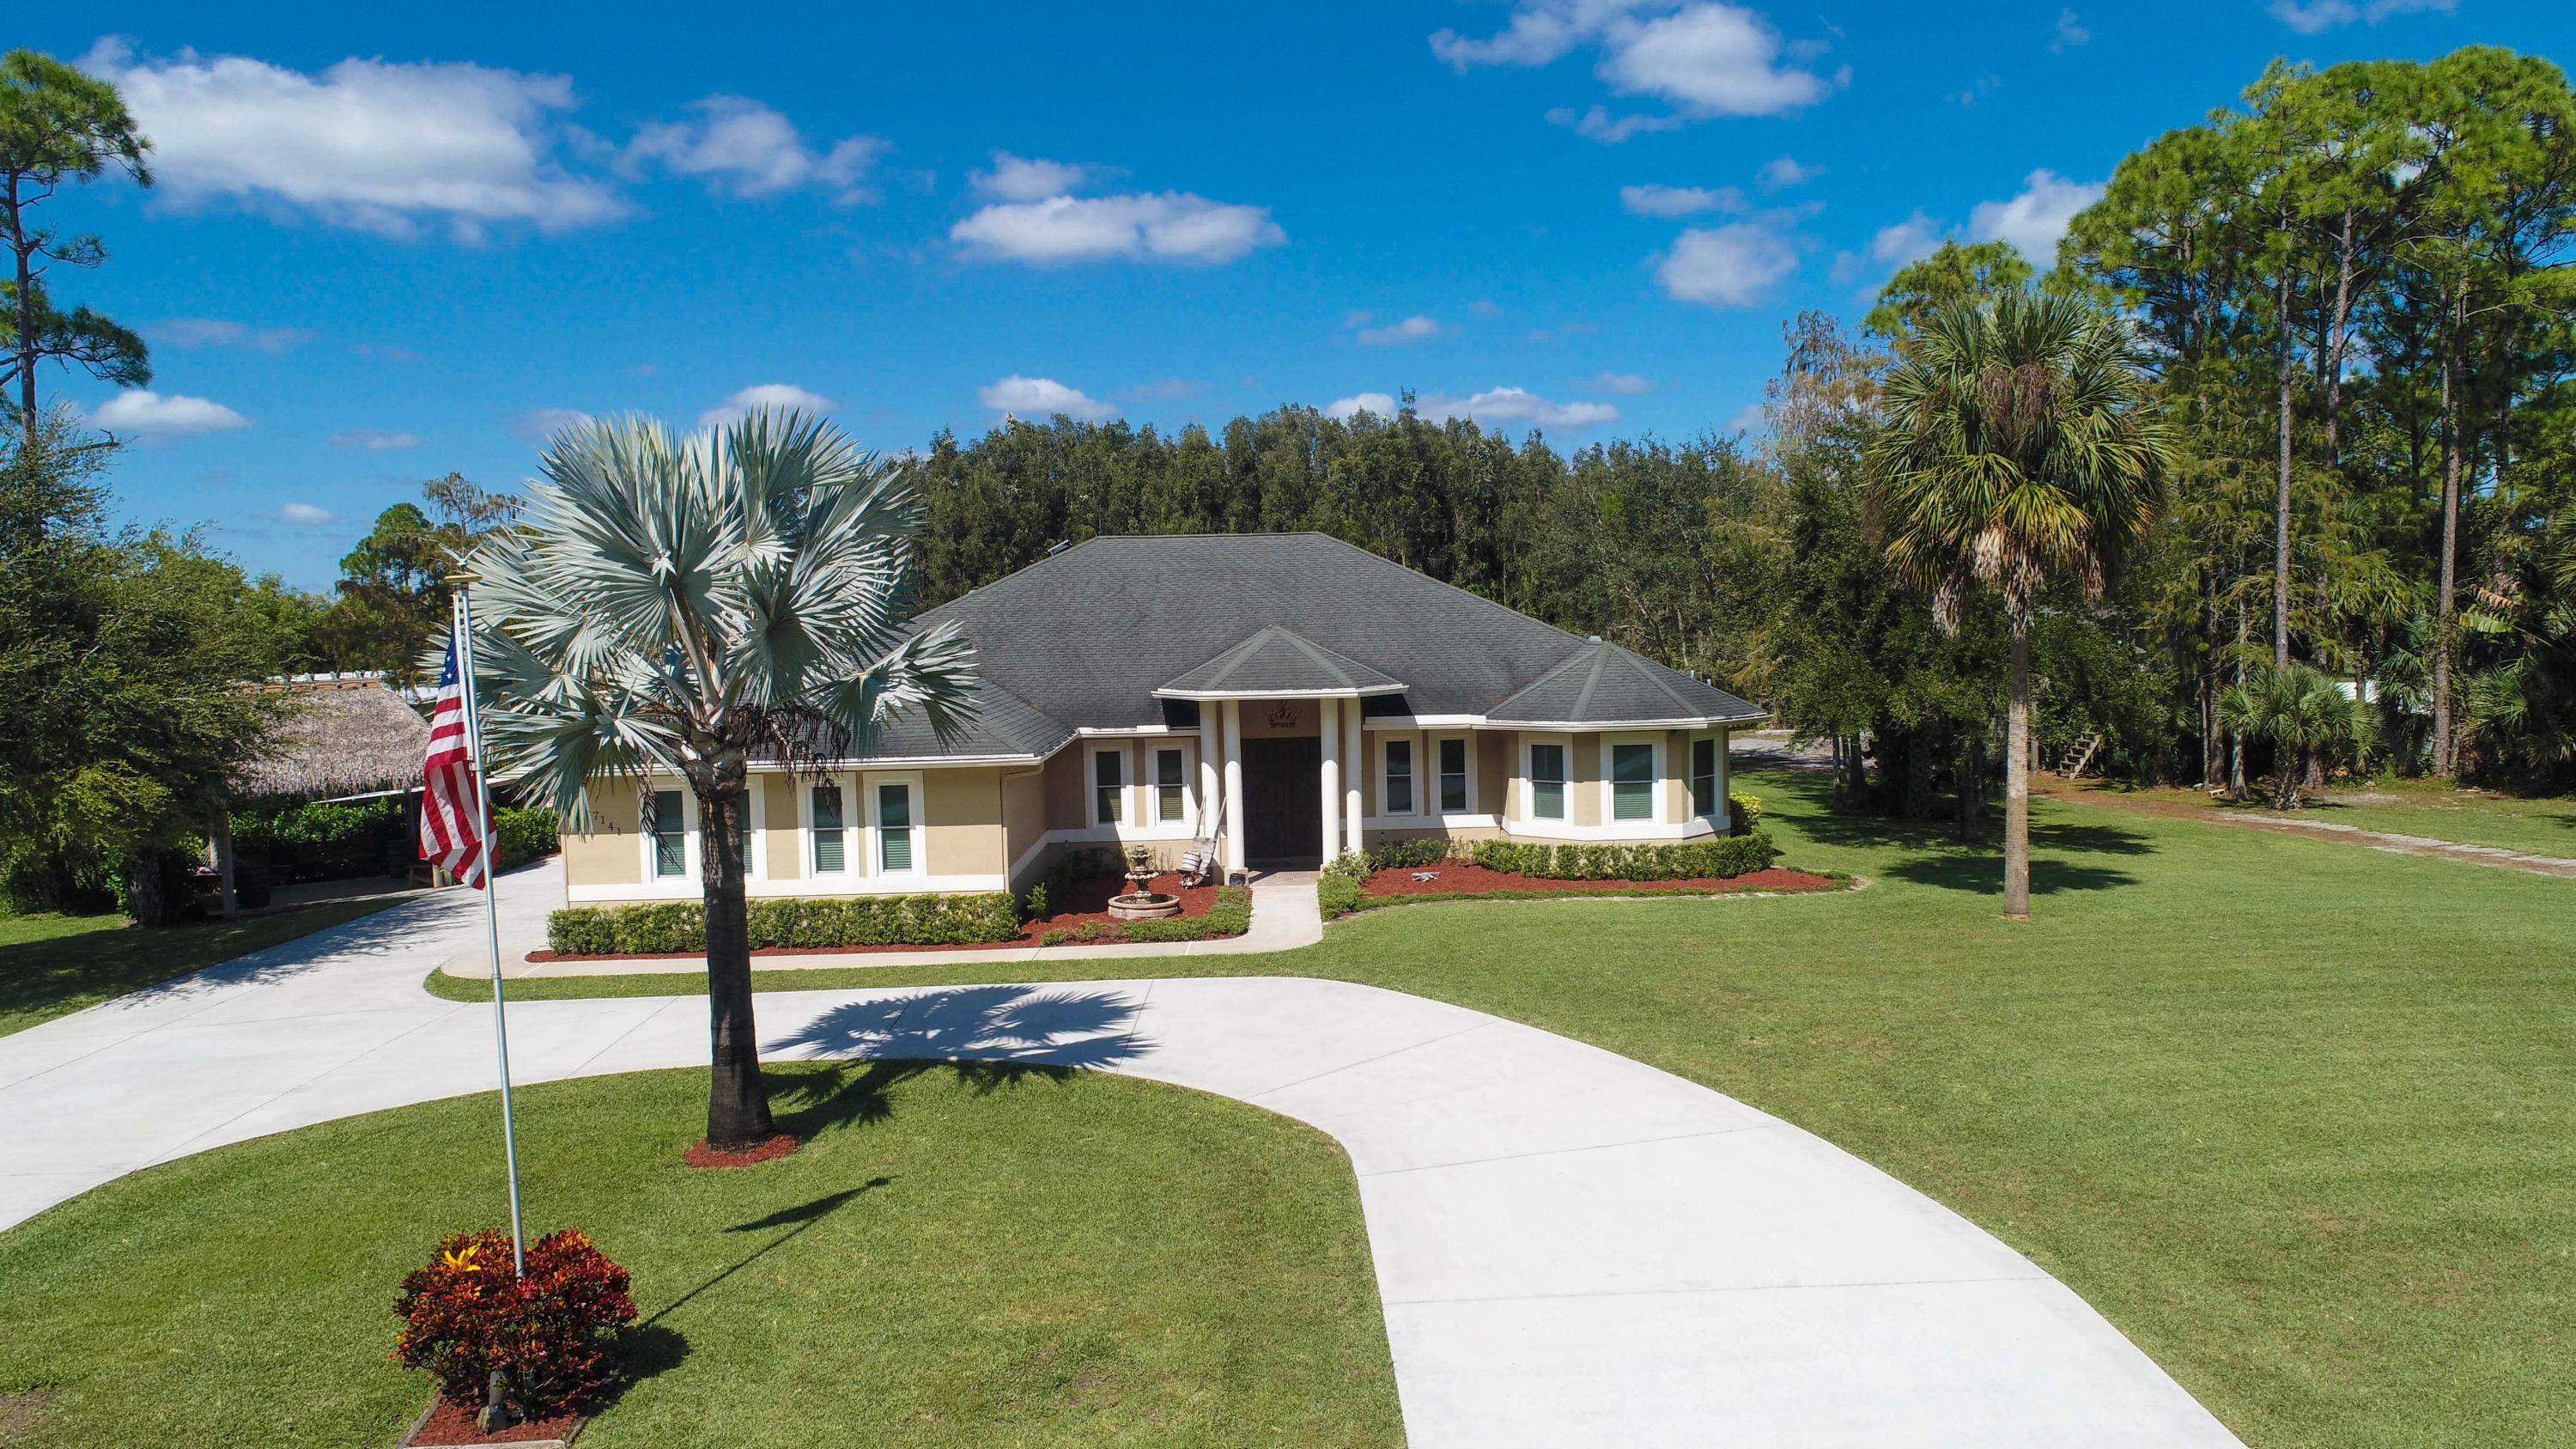 17141 67th Court North Court N, Loxahatchee in Palm Beach County, FL 33470 Home for Sale